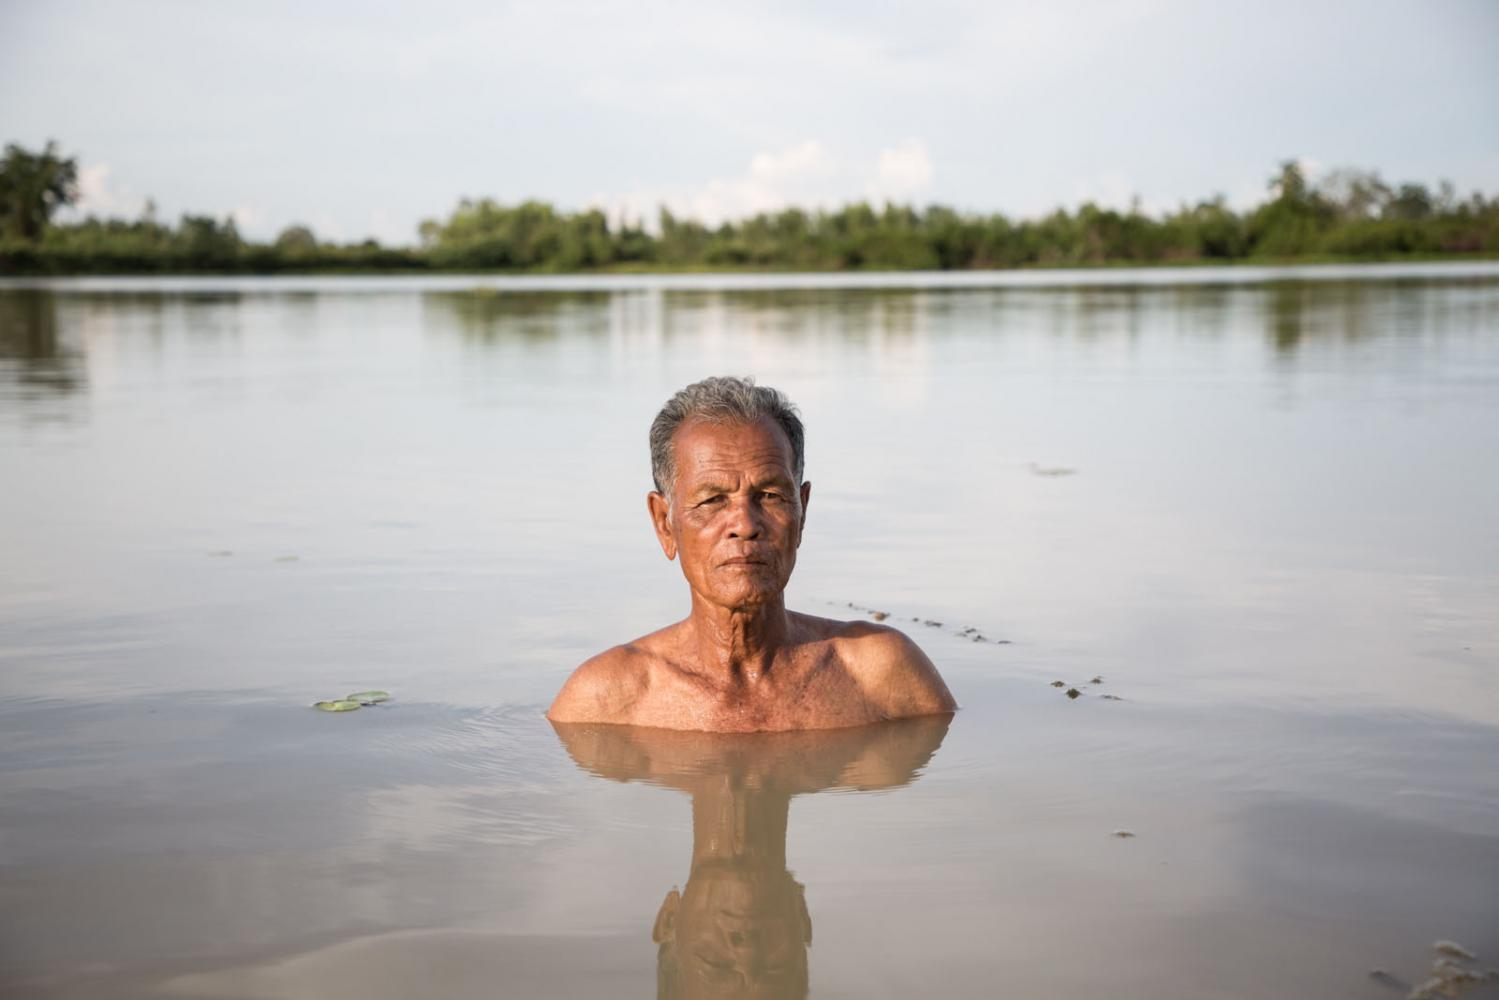 A man who's land was flooded by a dam constructed nearby stands in what was previously farmland. Si Saket, Thailand.